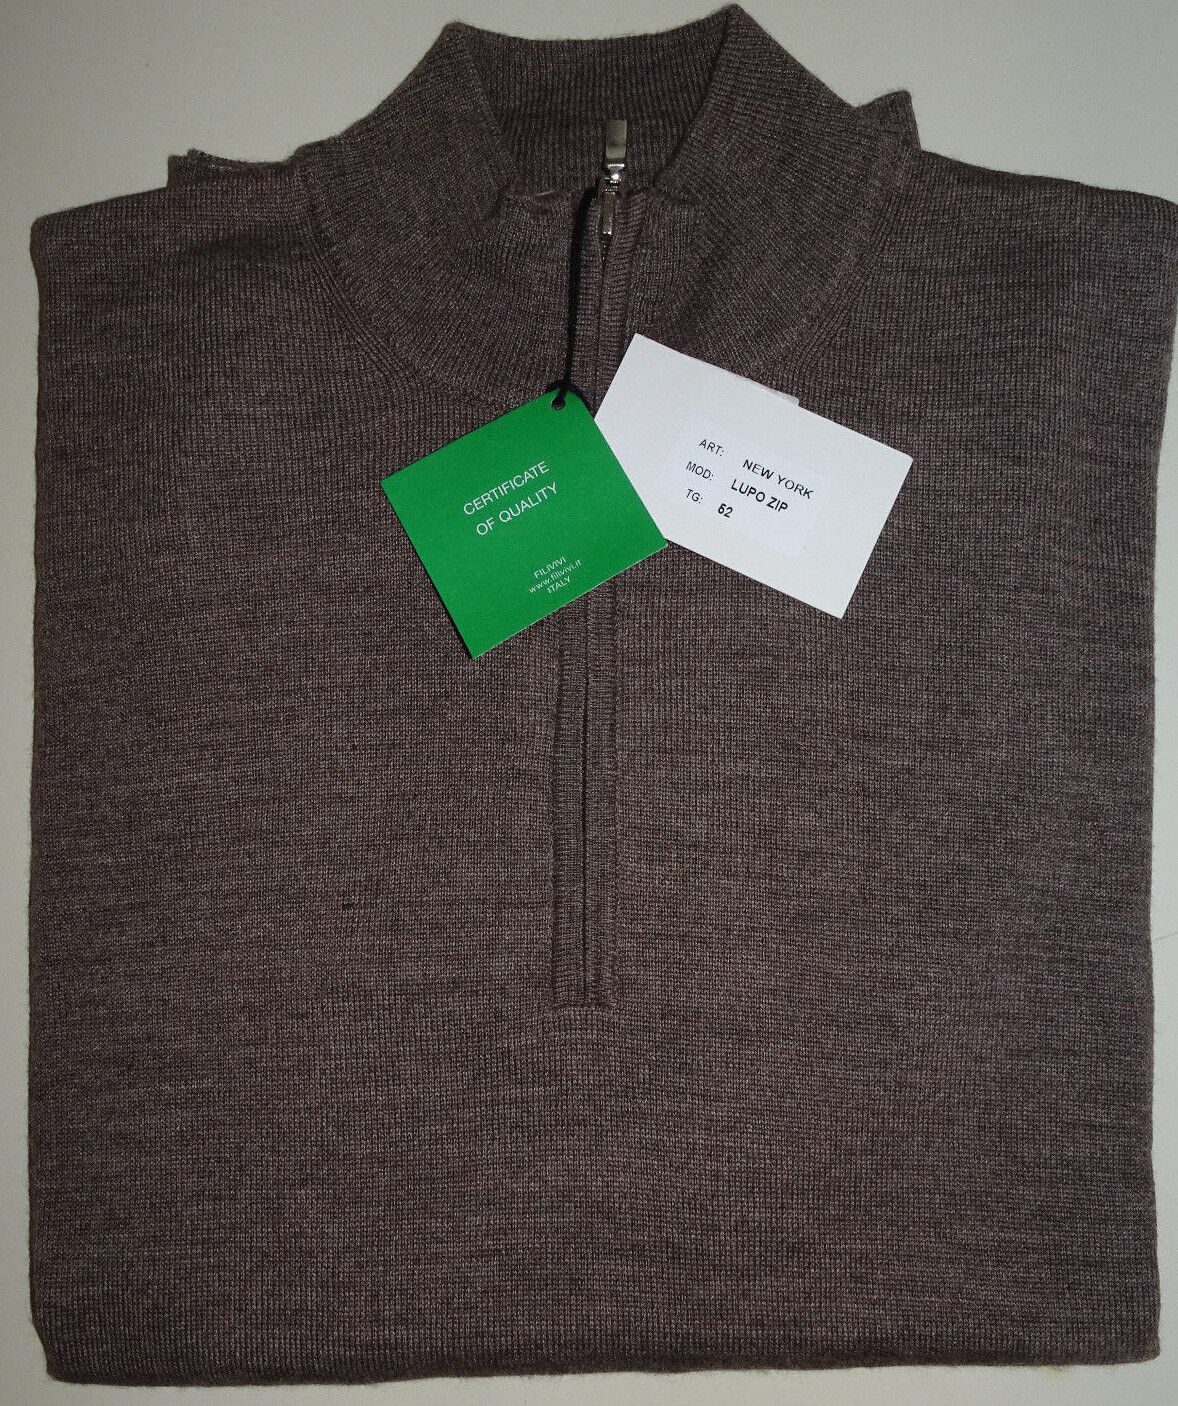 Weekend Messieurs Luxe Sweatshirt Pull Marron Made  L (uk42) Prix Recomhommedé 119,- NEUF